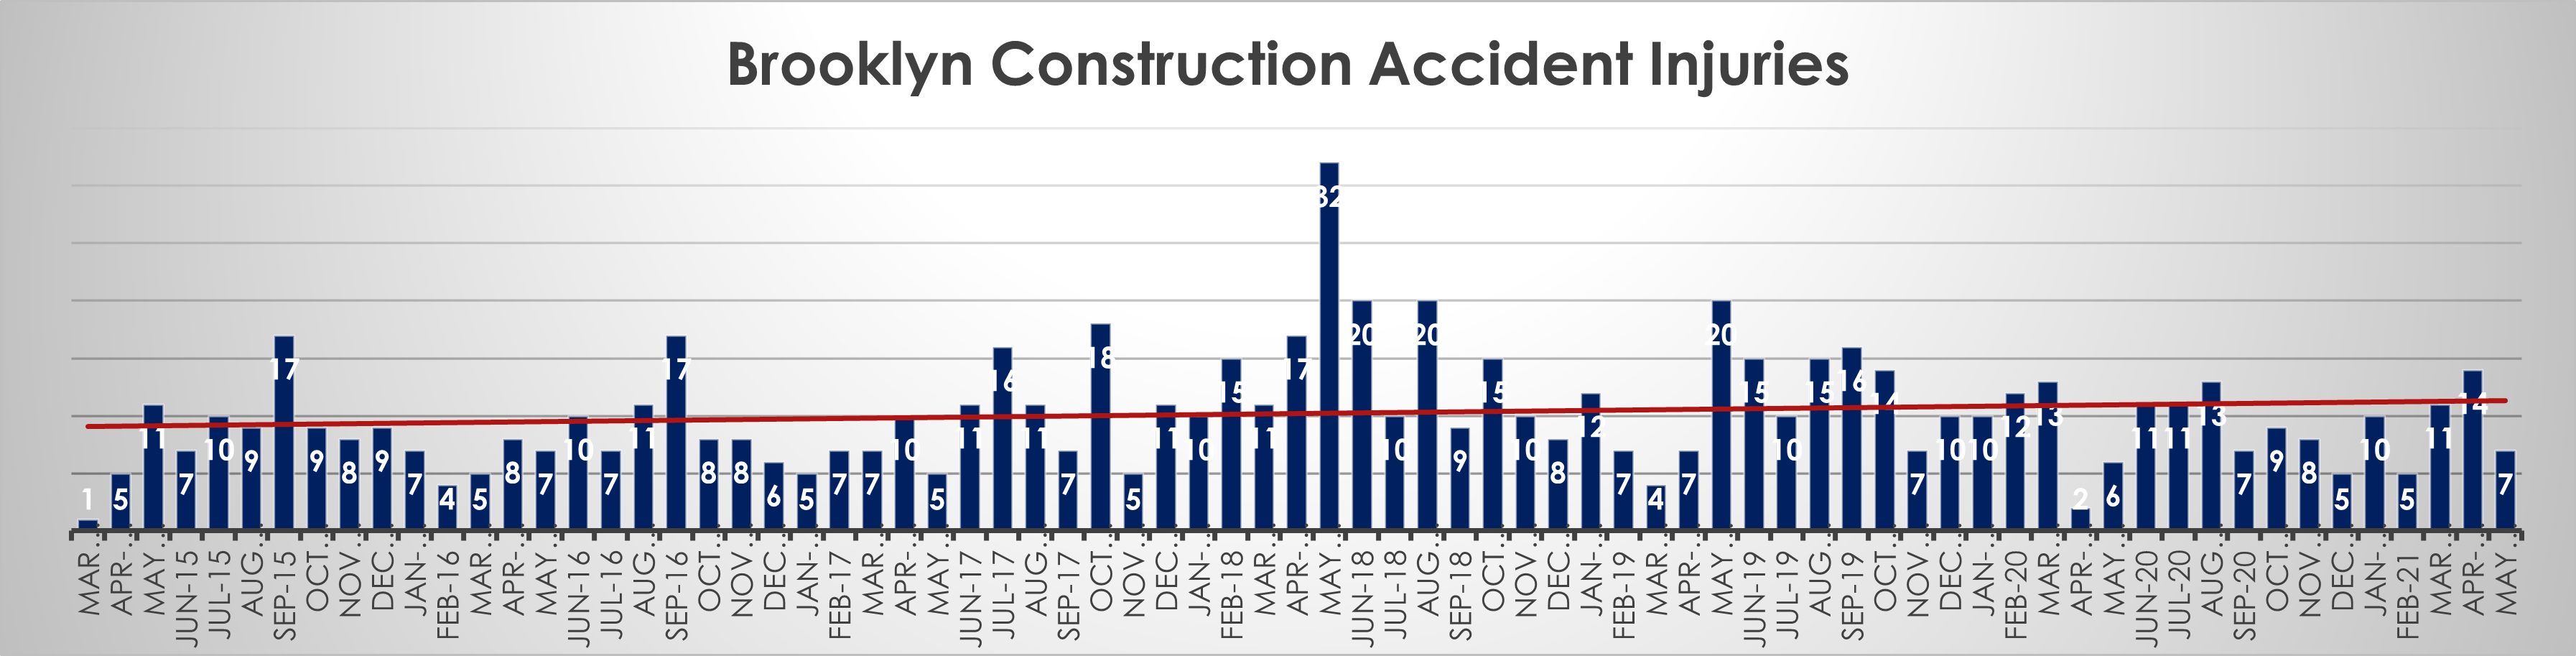 Brooklyn construction accident injuries May 21